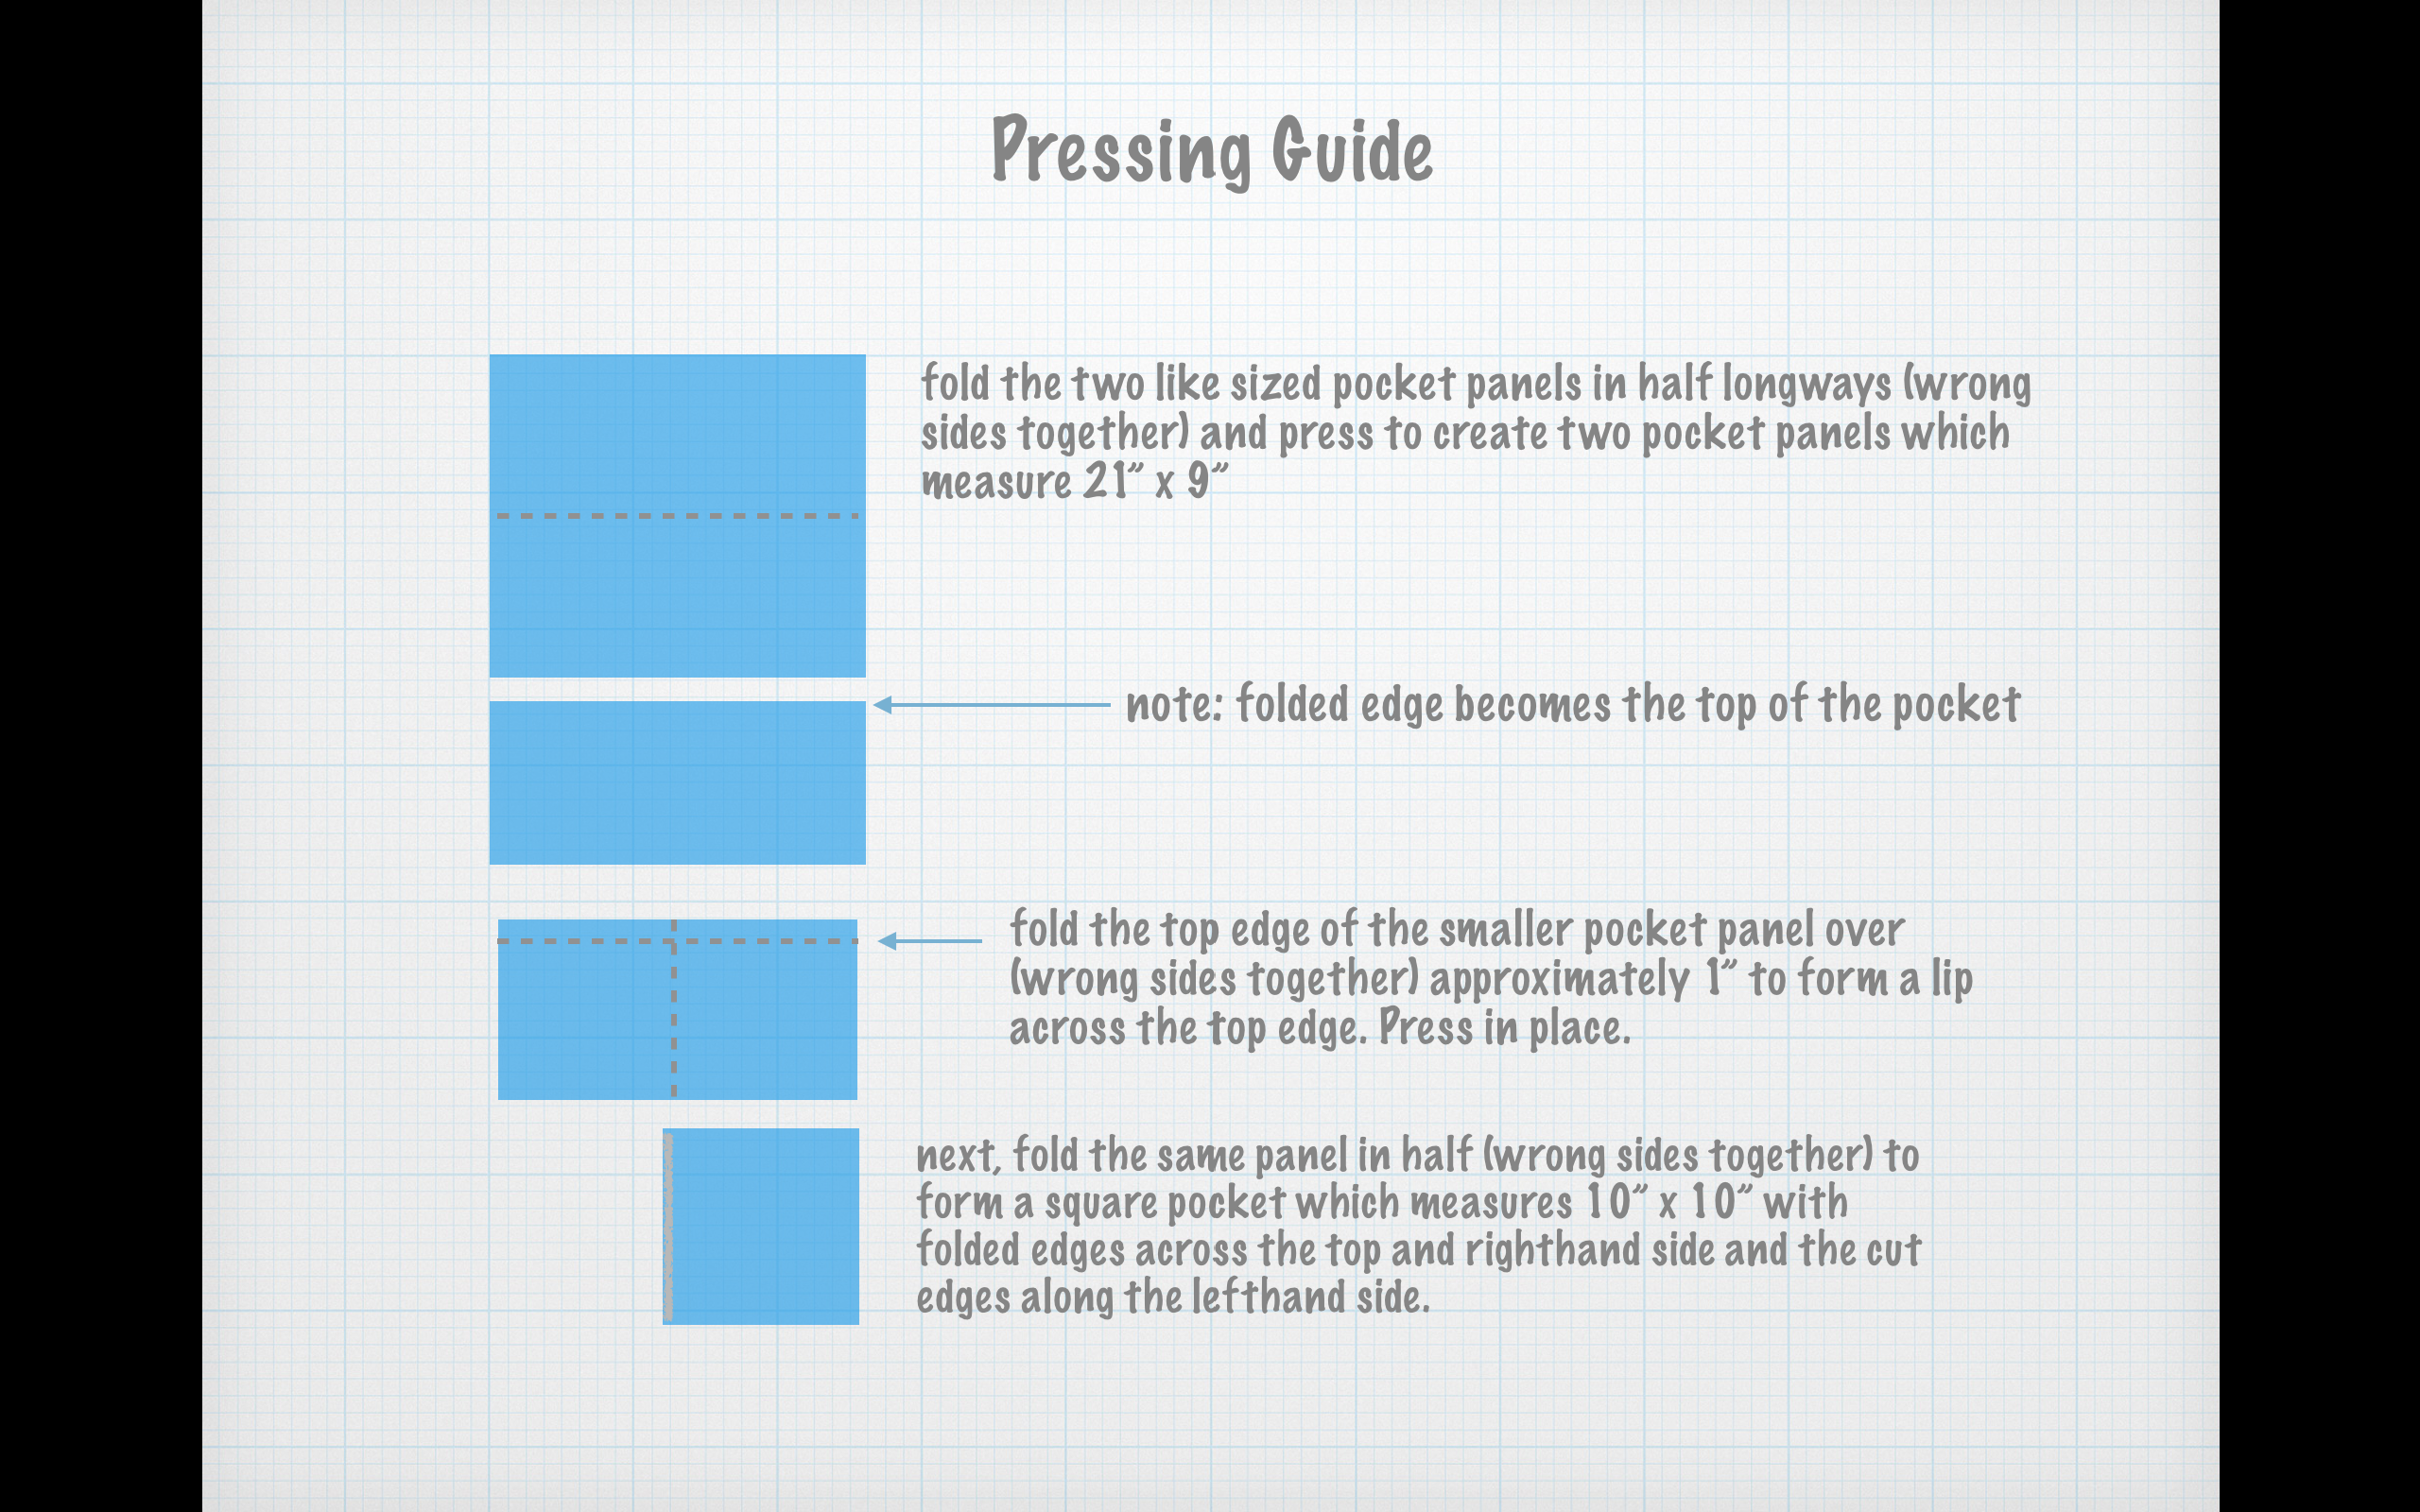 Pressing Guide Page 2